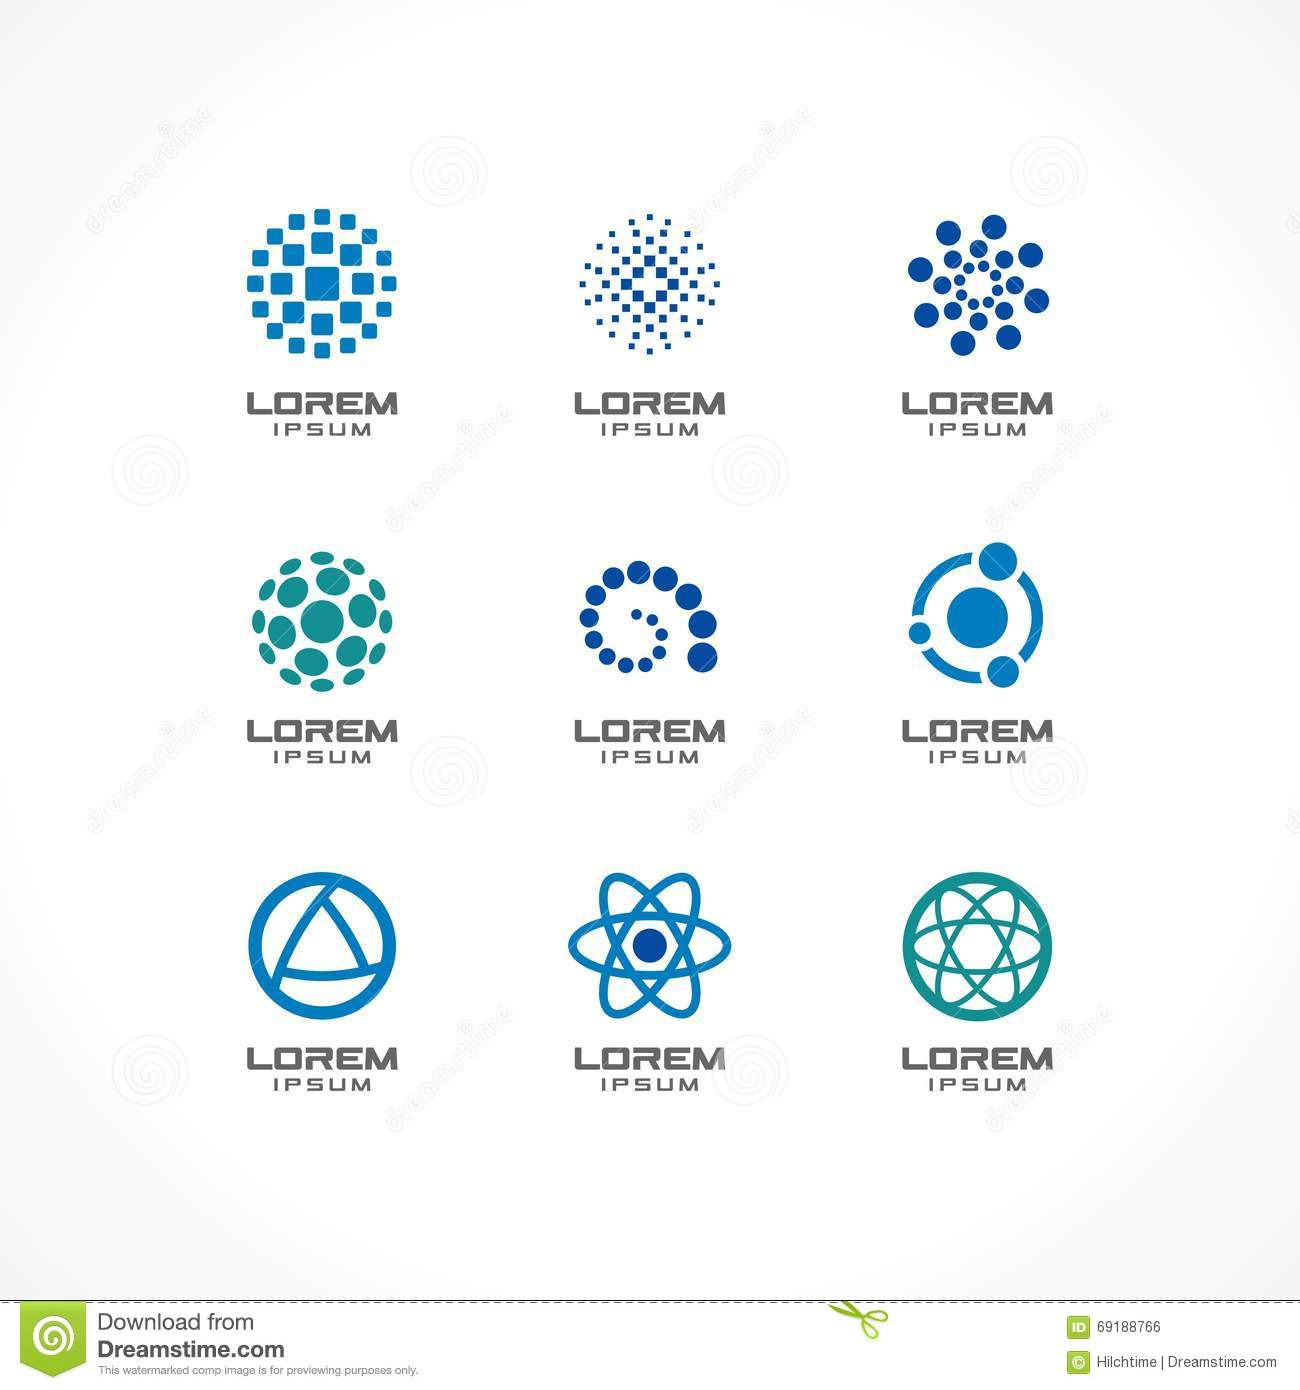 set of icon design elements abstract logo ideas for business company